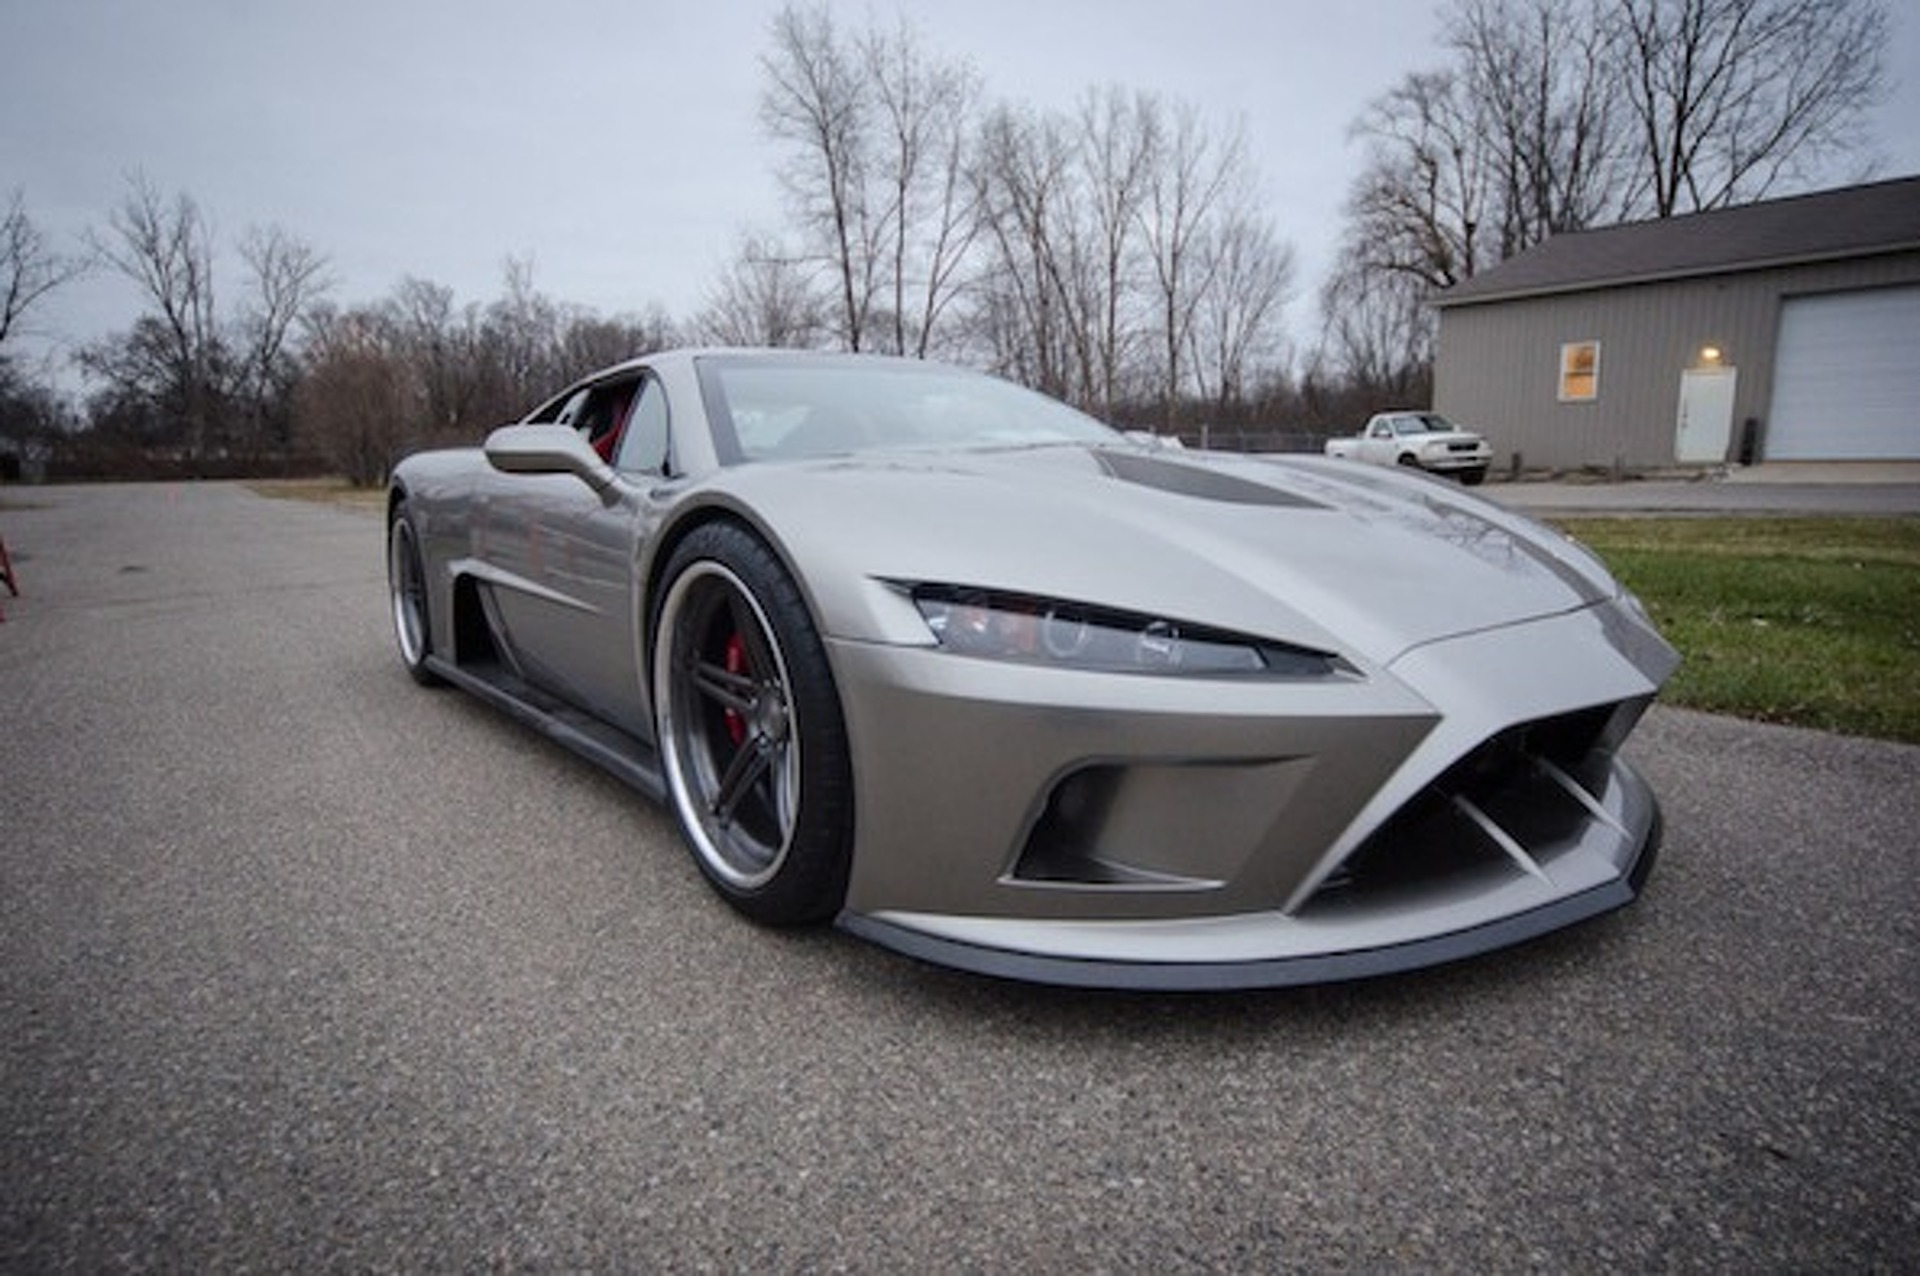 eBay Car of the Week: 2013 Falcon F7